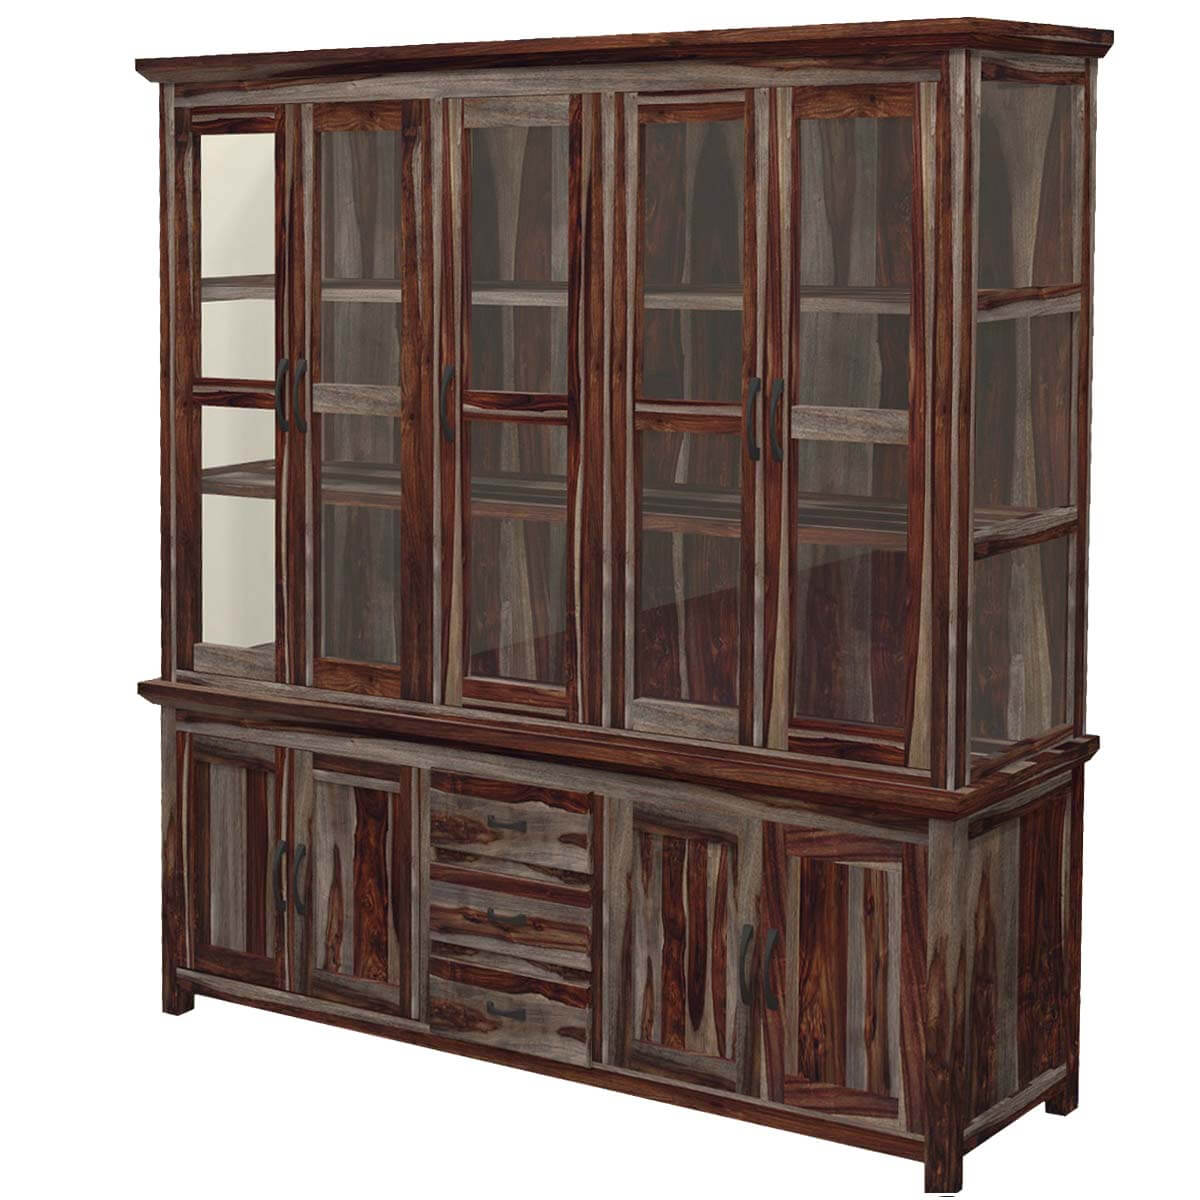 sc 1 st  Sierra Living Concepts & Dallas Ranch Rustic Solid Wood Glass Door Dining China Hutch